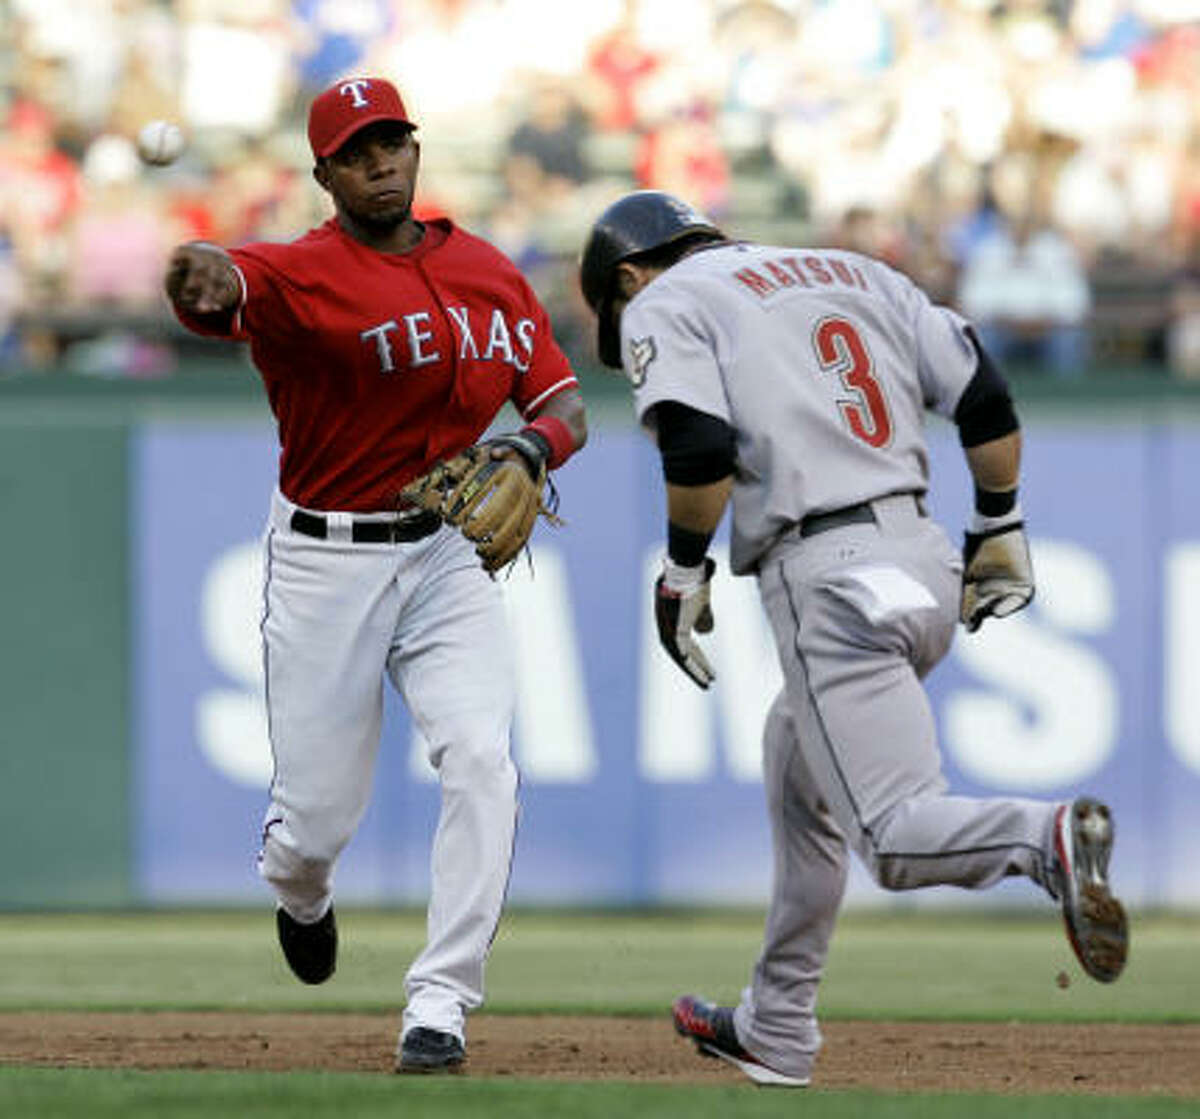 Rangers shortstop Elvis Andrus forces out Houston's Kazuo Matsui and throws to first for the double play in the second inning.